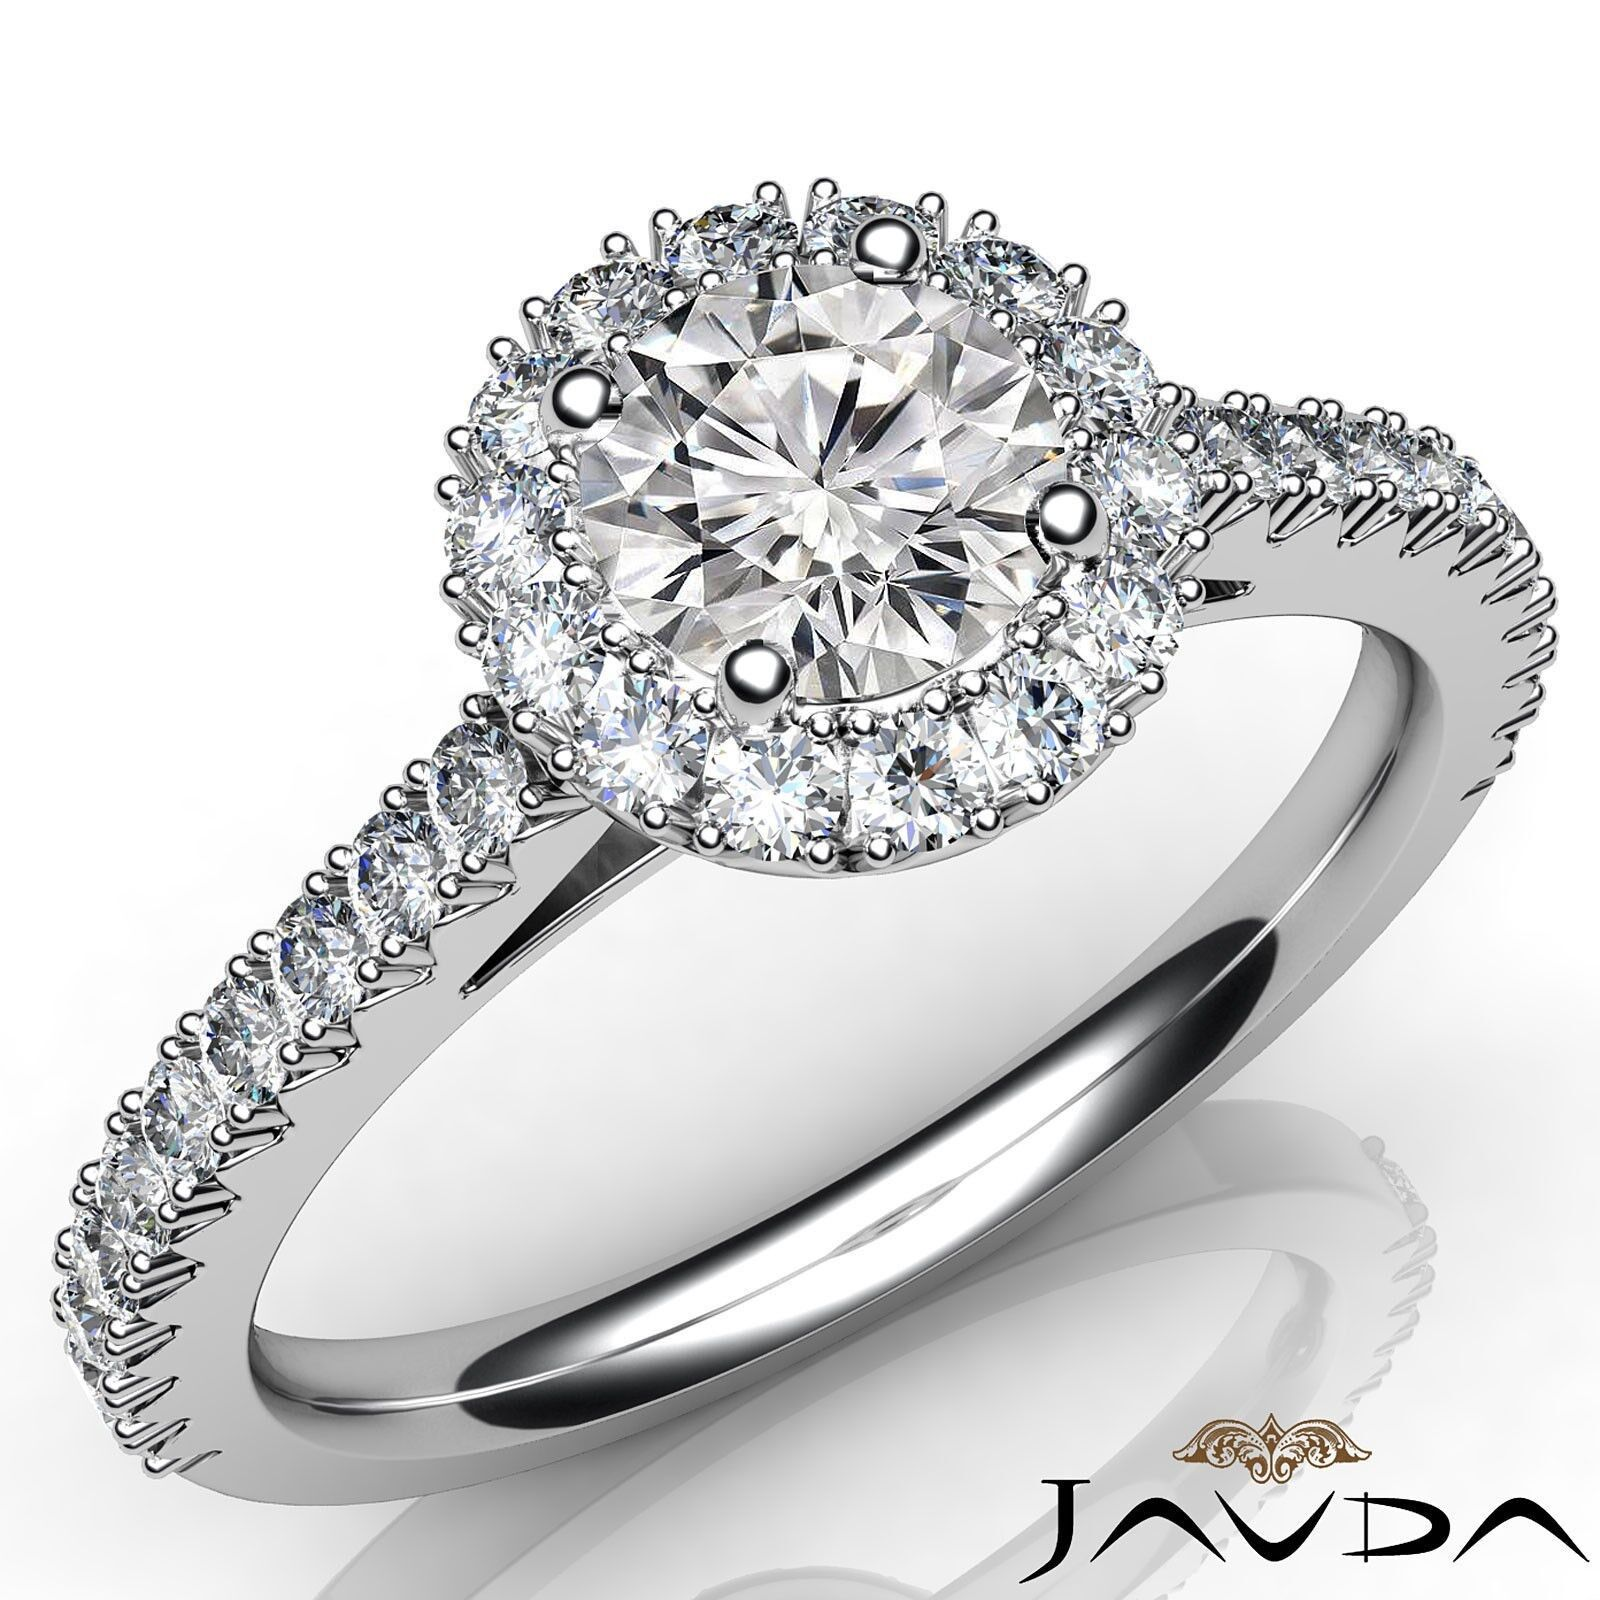 French Cut Pave Halo Round Diamond Engagement Ring GIA Certified F VS2 1.50 Ct